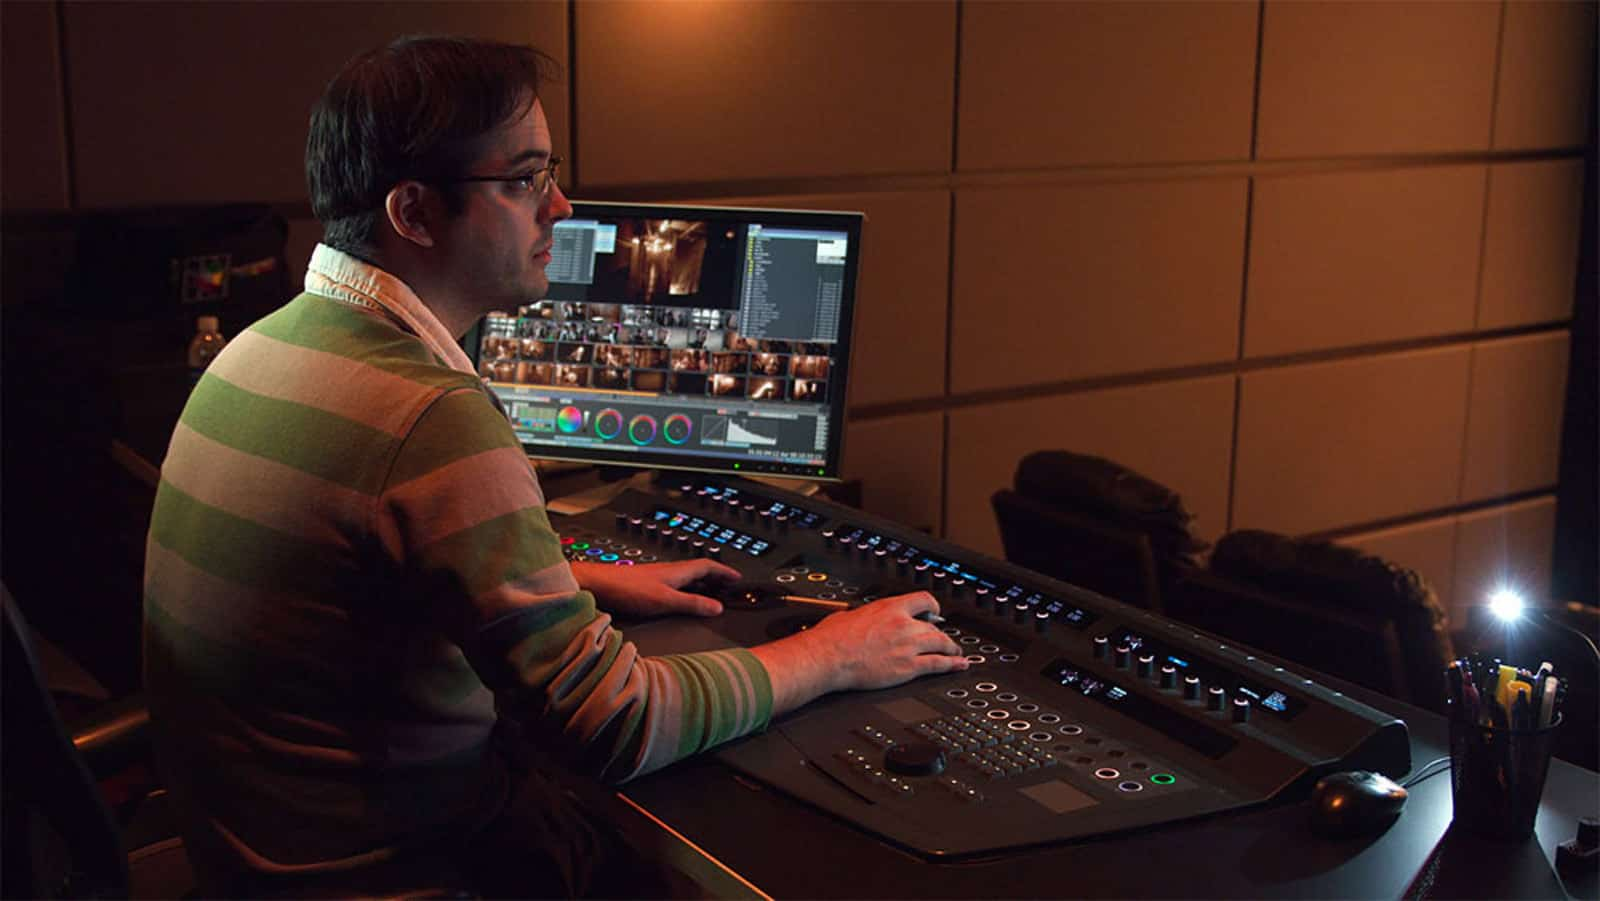 Ian Vertovec working on Quantel Pablo on <em>The Girl with the Dragon Tattoo</em> at Light Iron